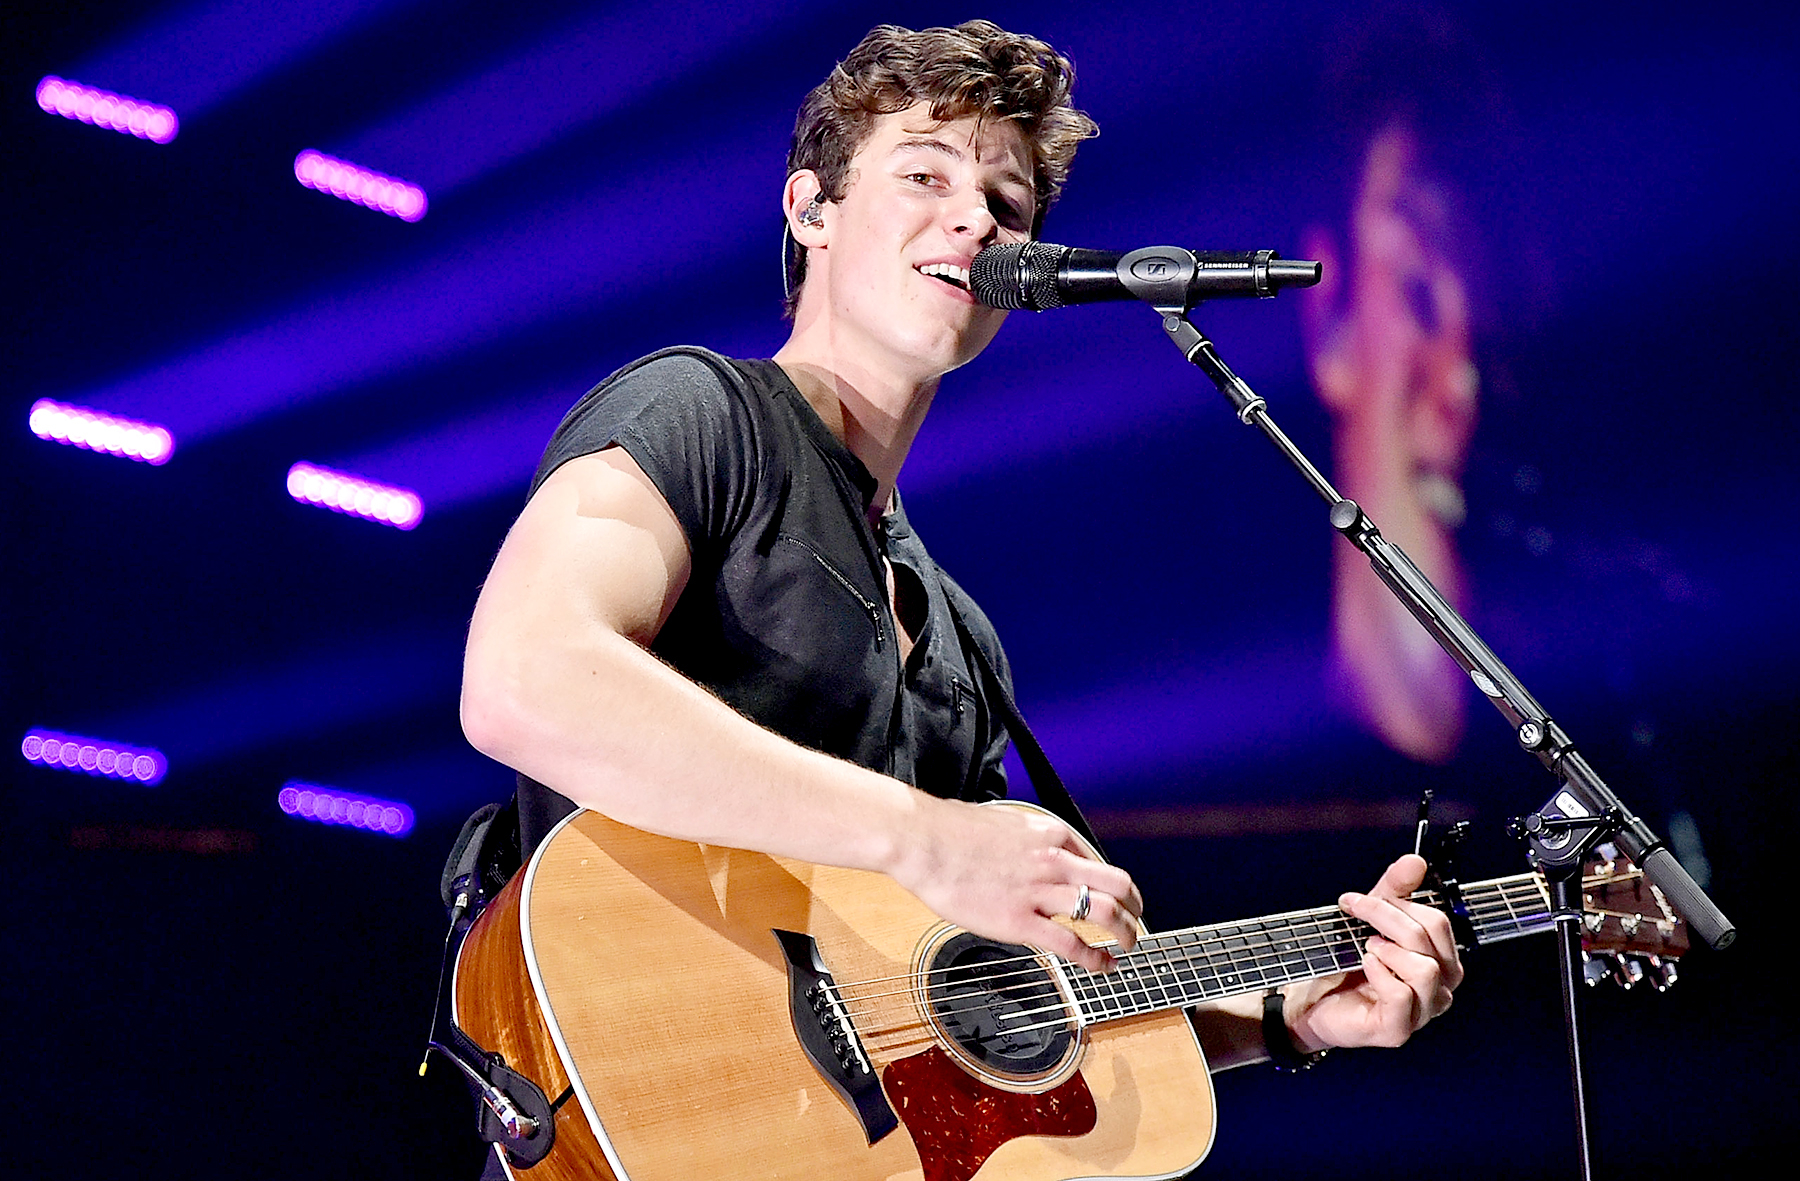 Shawn Mendes performs at Prudential Center on August 17, 2017 in Newark, New Jersey.